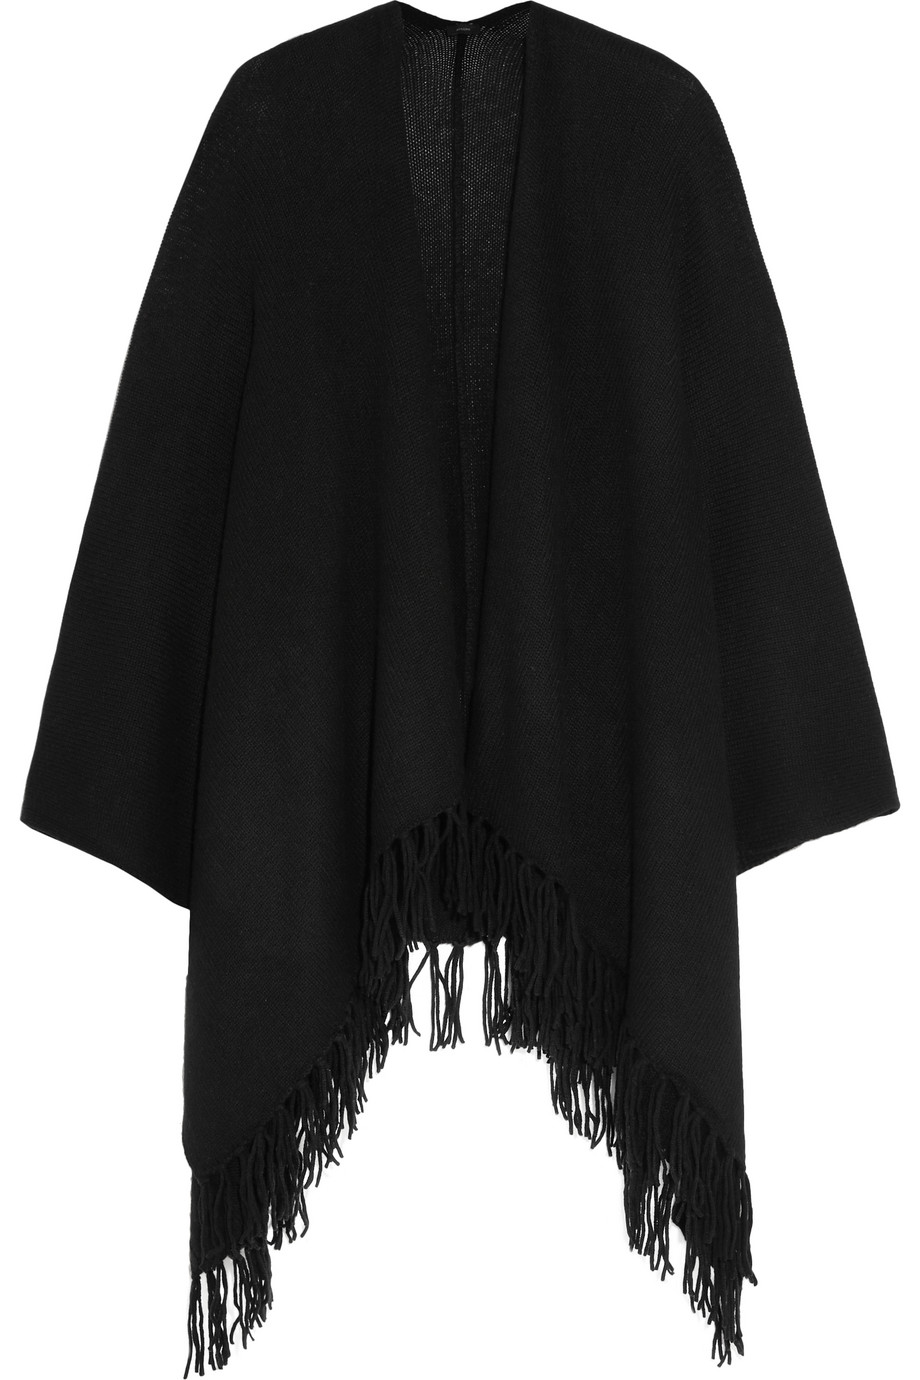 Joseph Oversized Fringed Cashmere Wrap, Black, Women's, Size: M